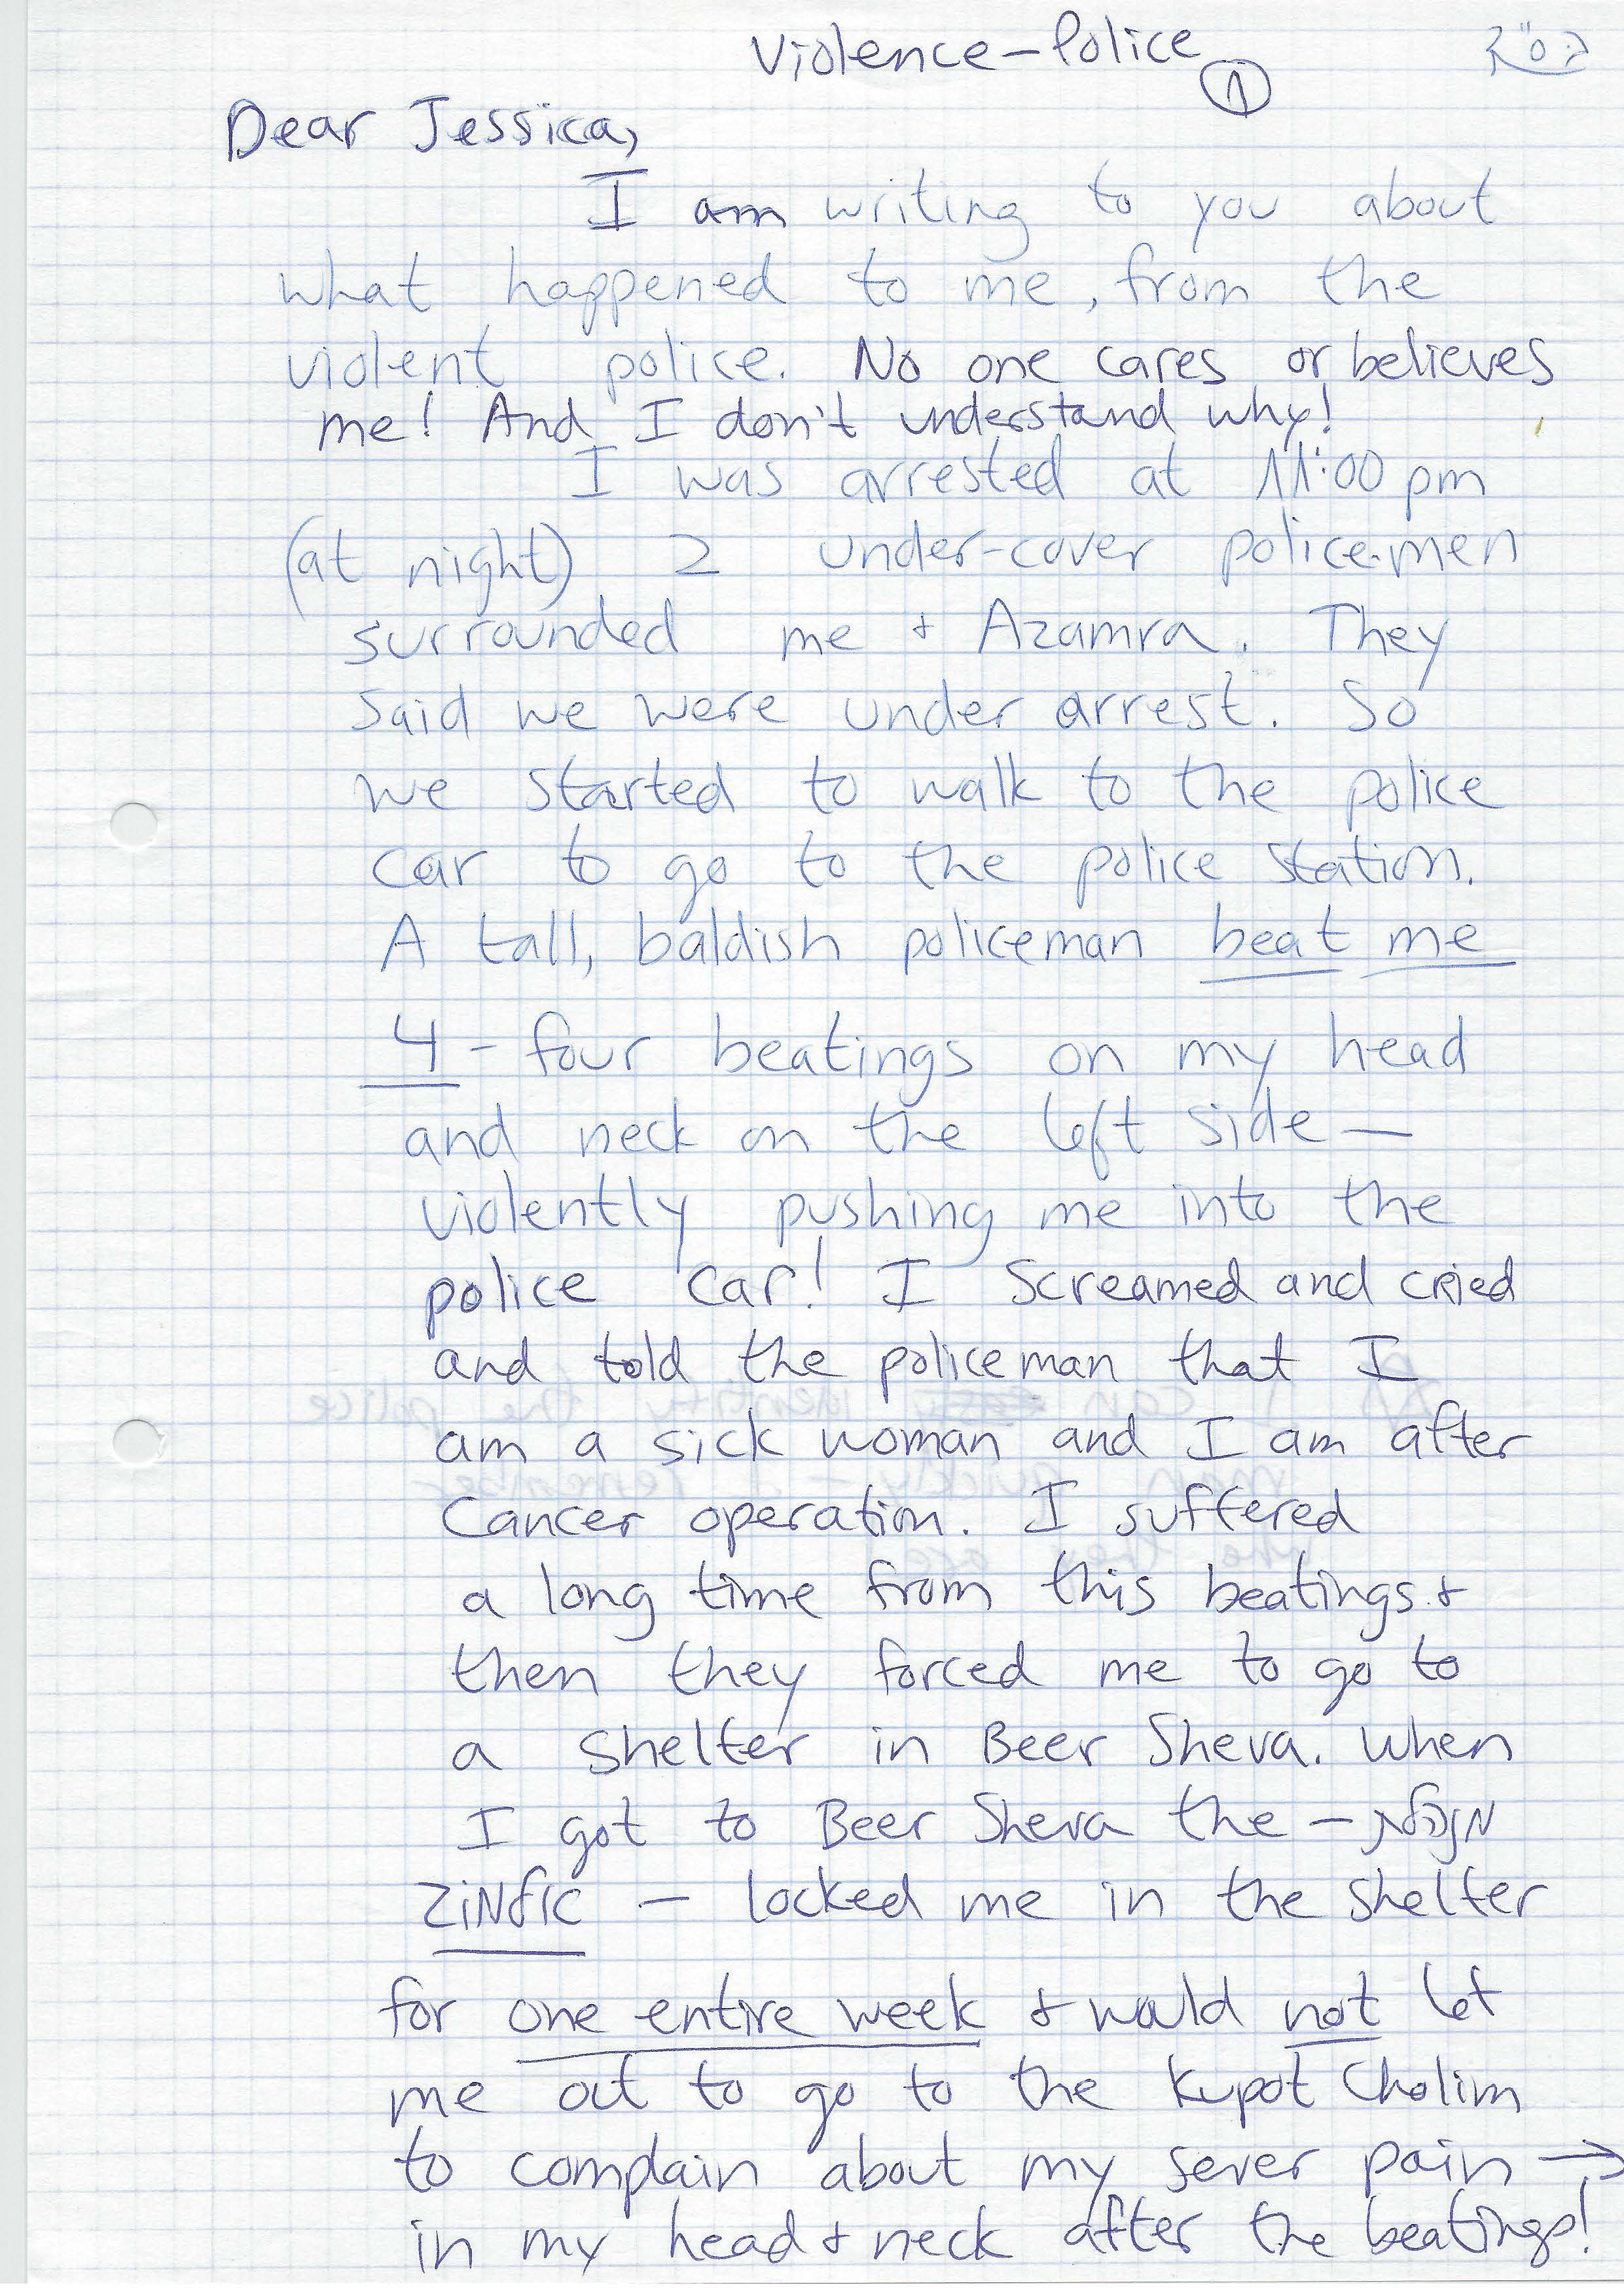 letterof E. about police violence_Page_1.jpg